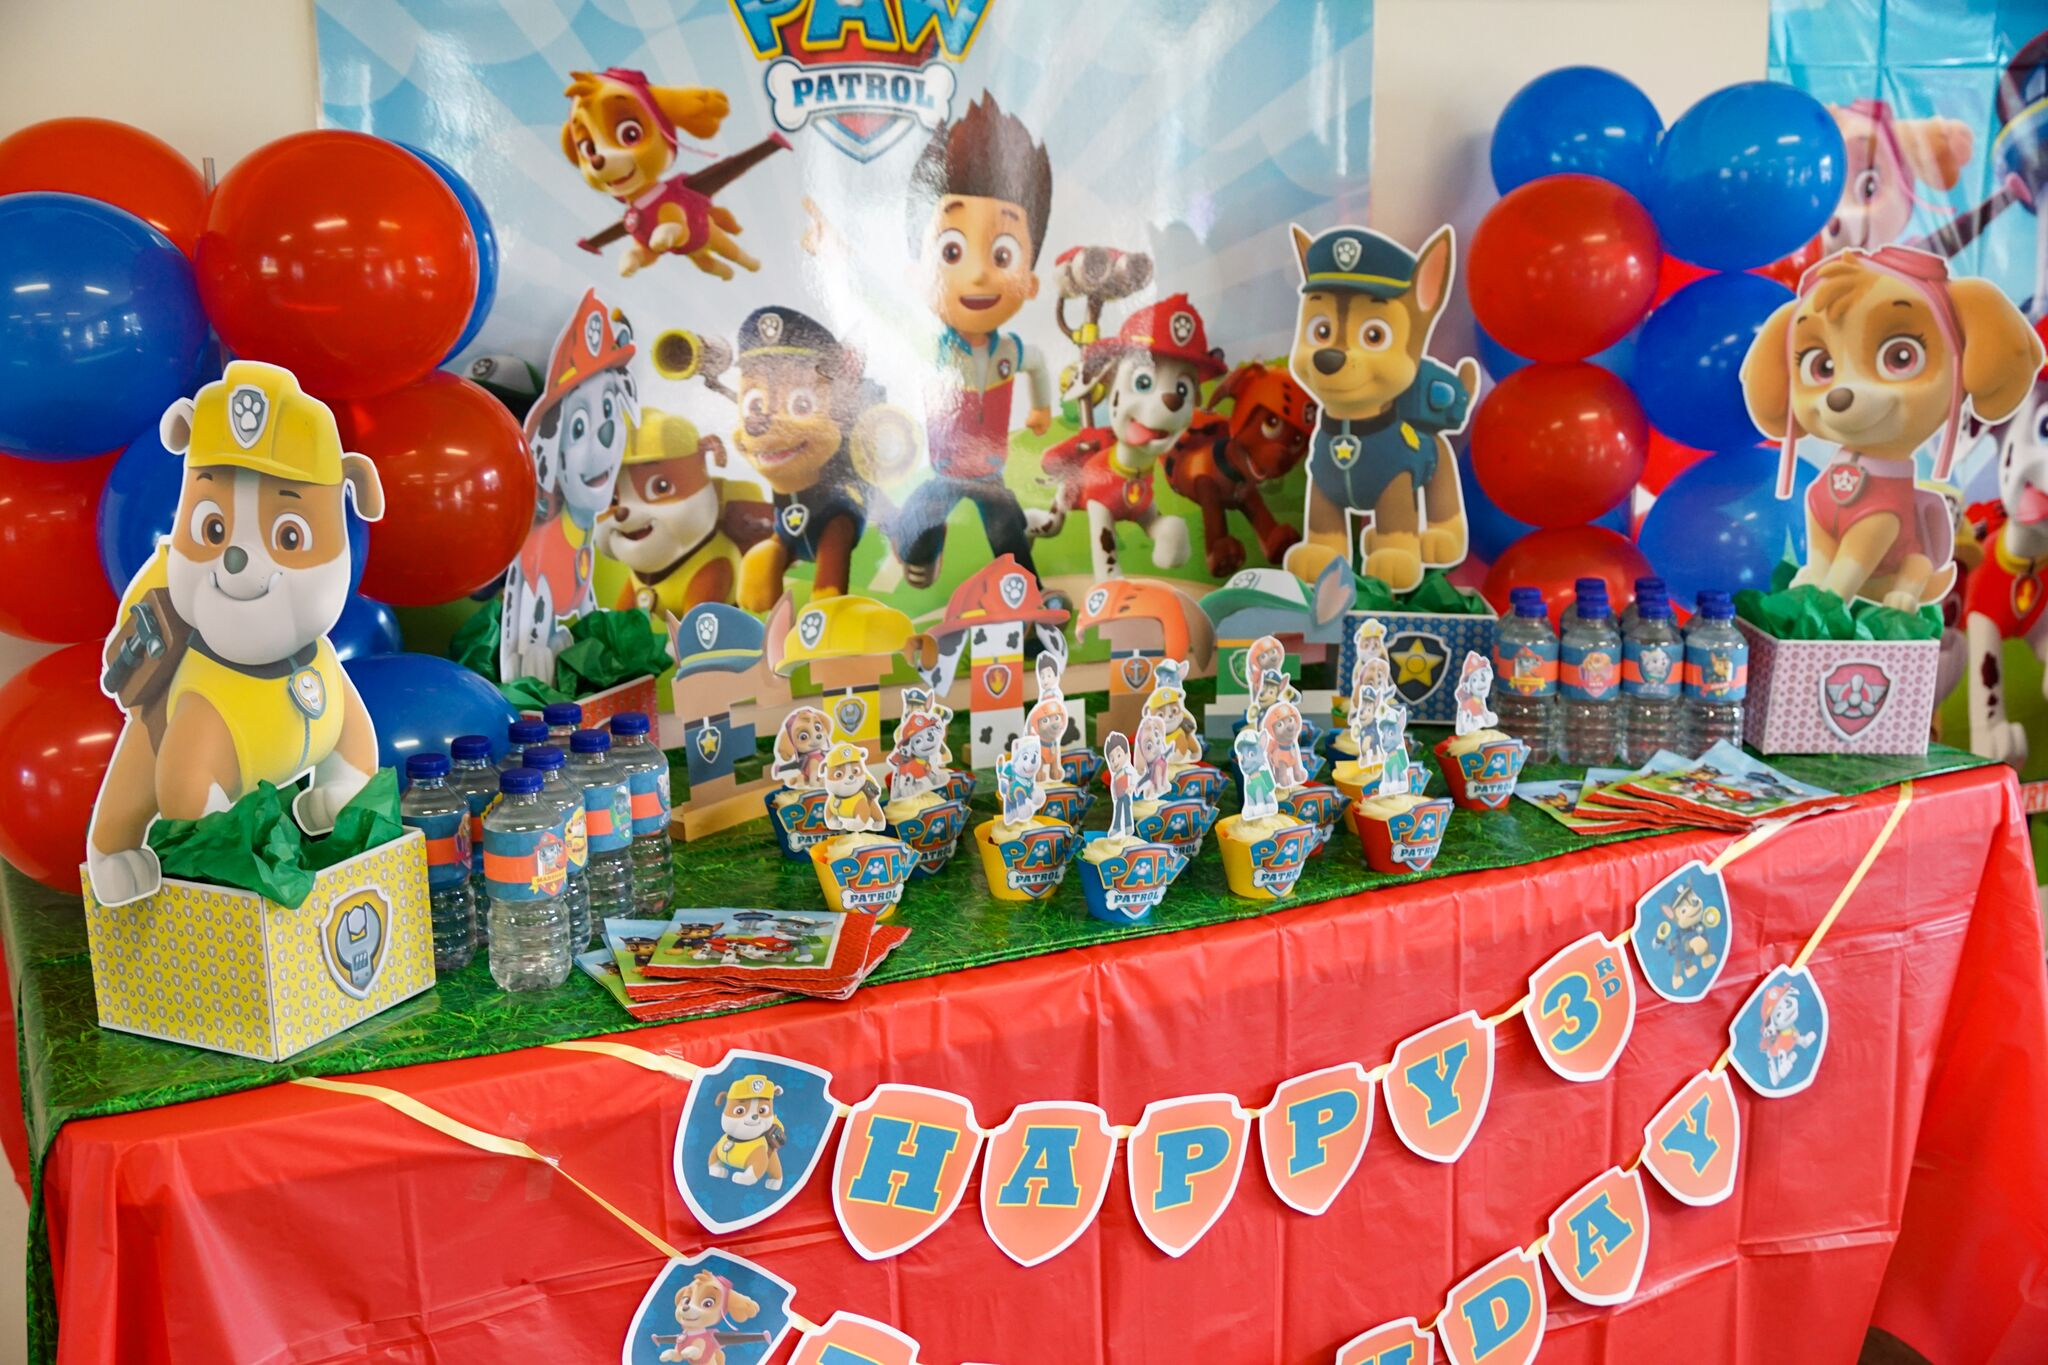 PAW PATROL CUPCAKE TOPPER amp WRAPPER TUTORIAL How To Step